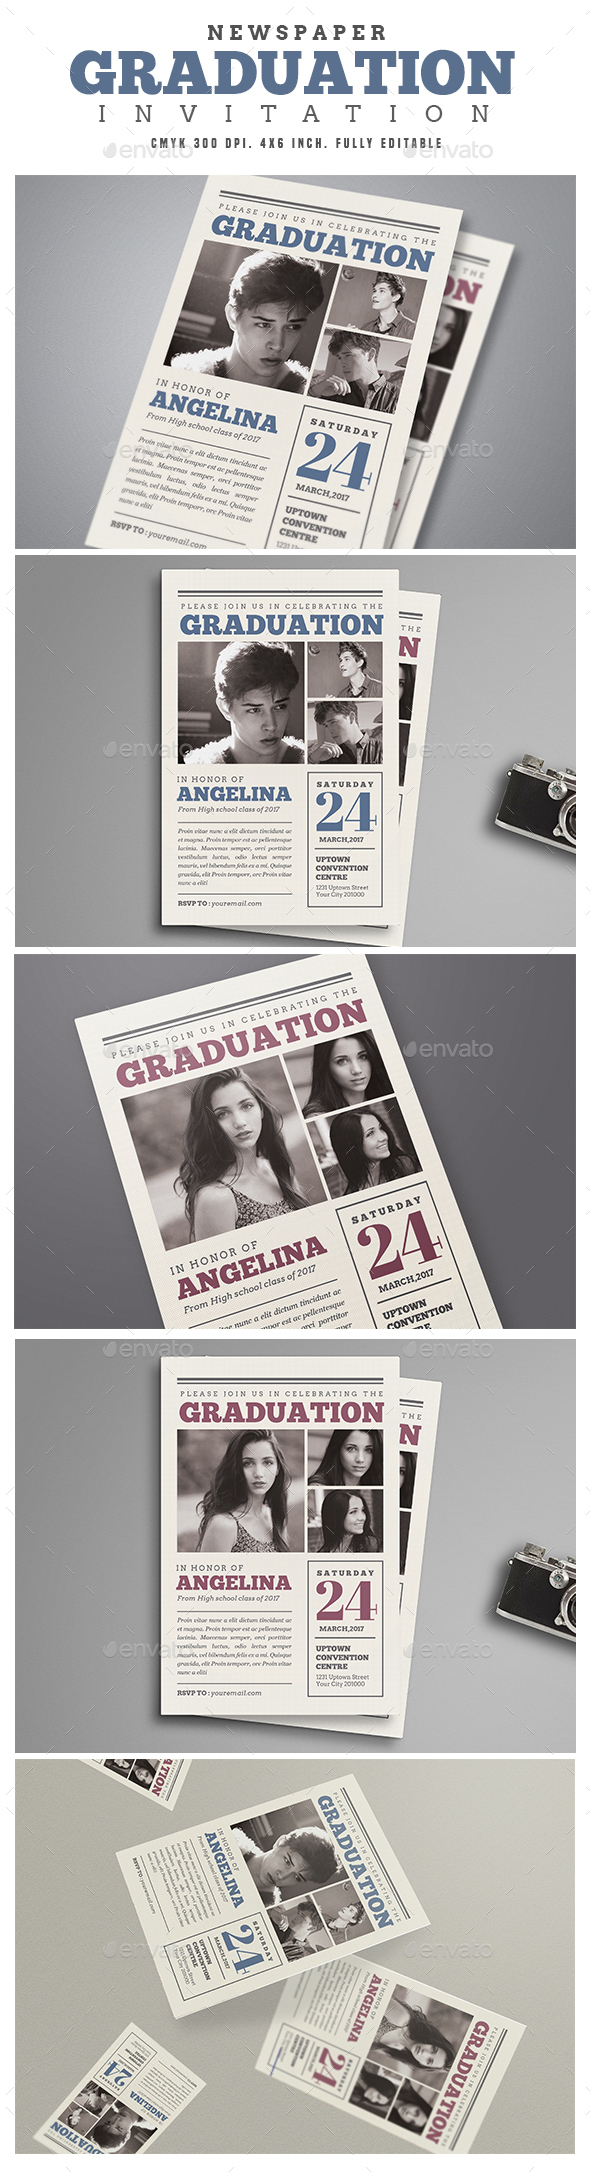 Newspaper Graduation invitation - Cards & Invites Print Templates